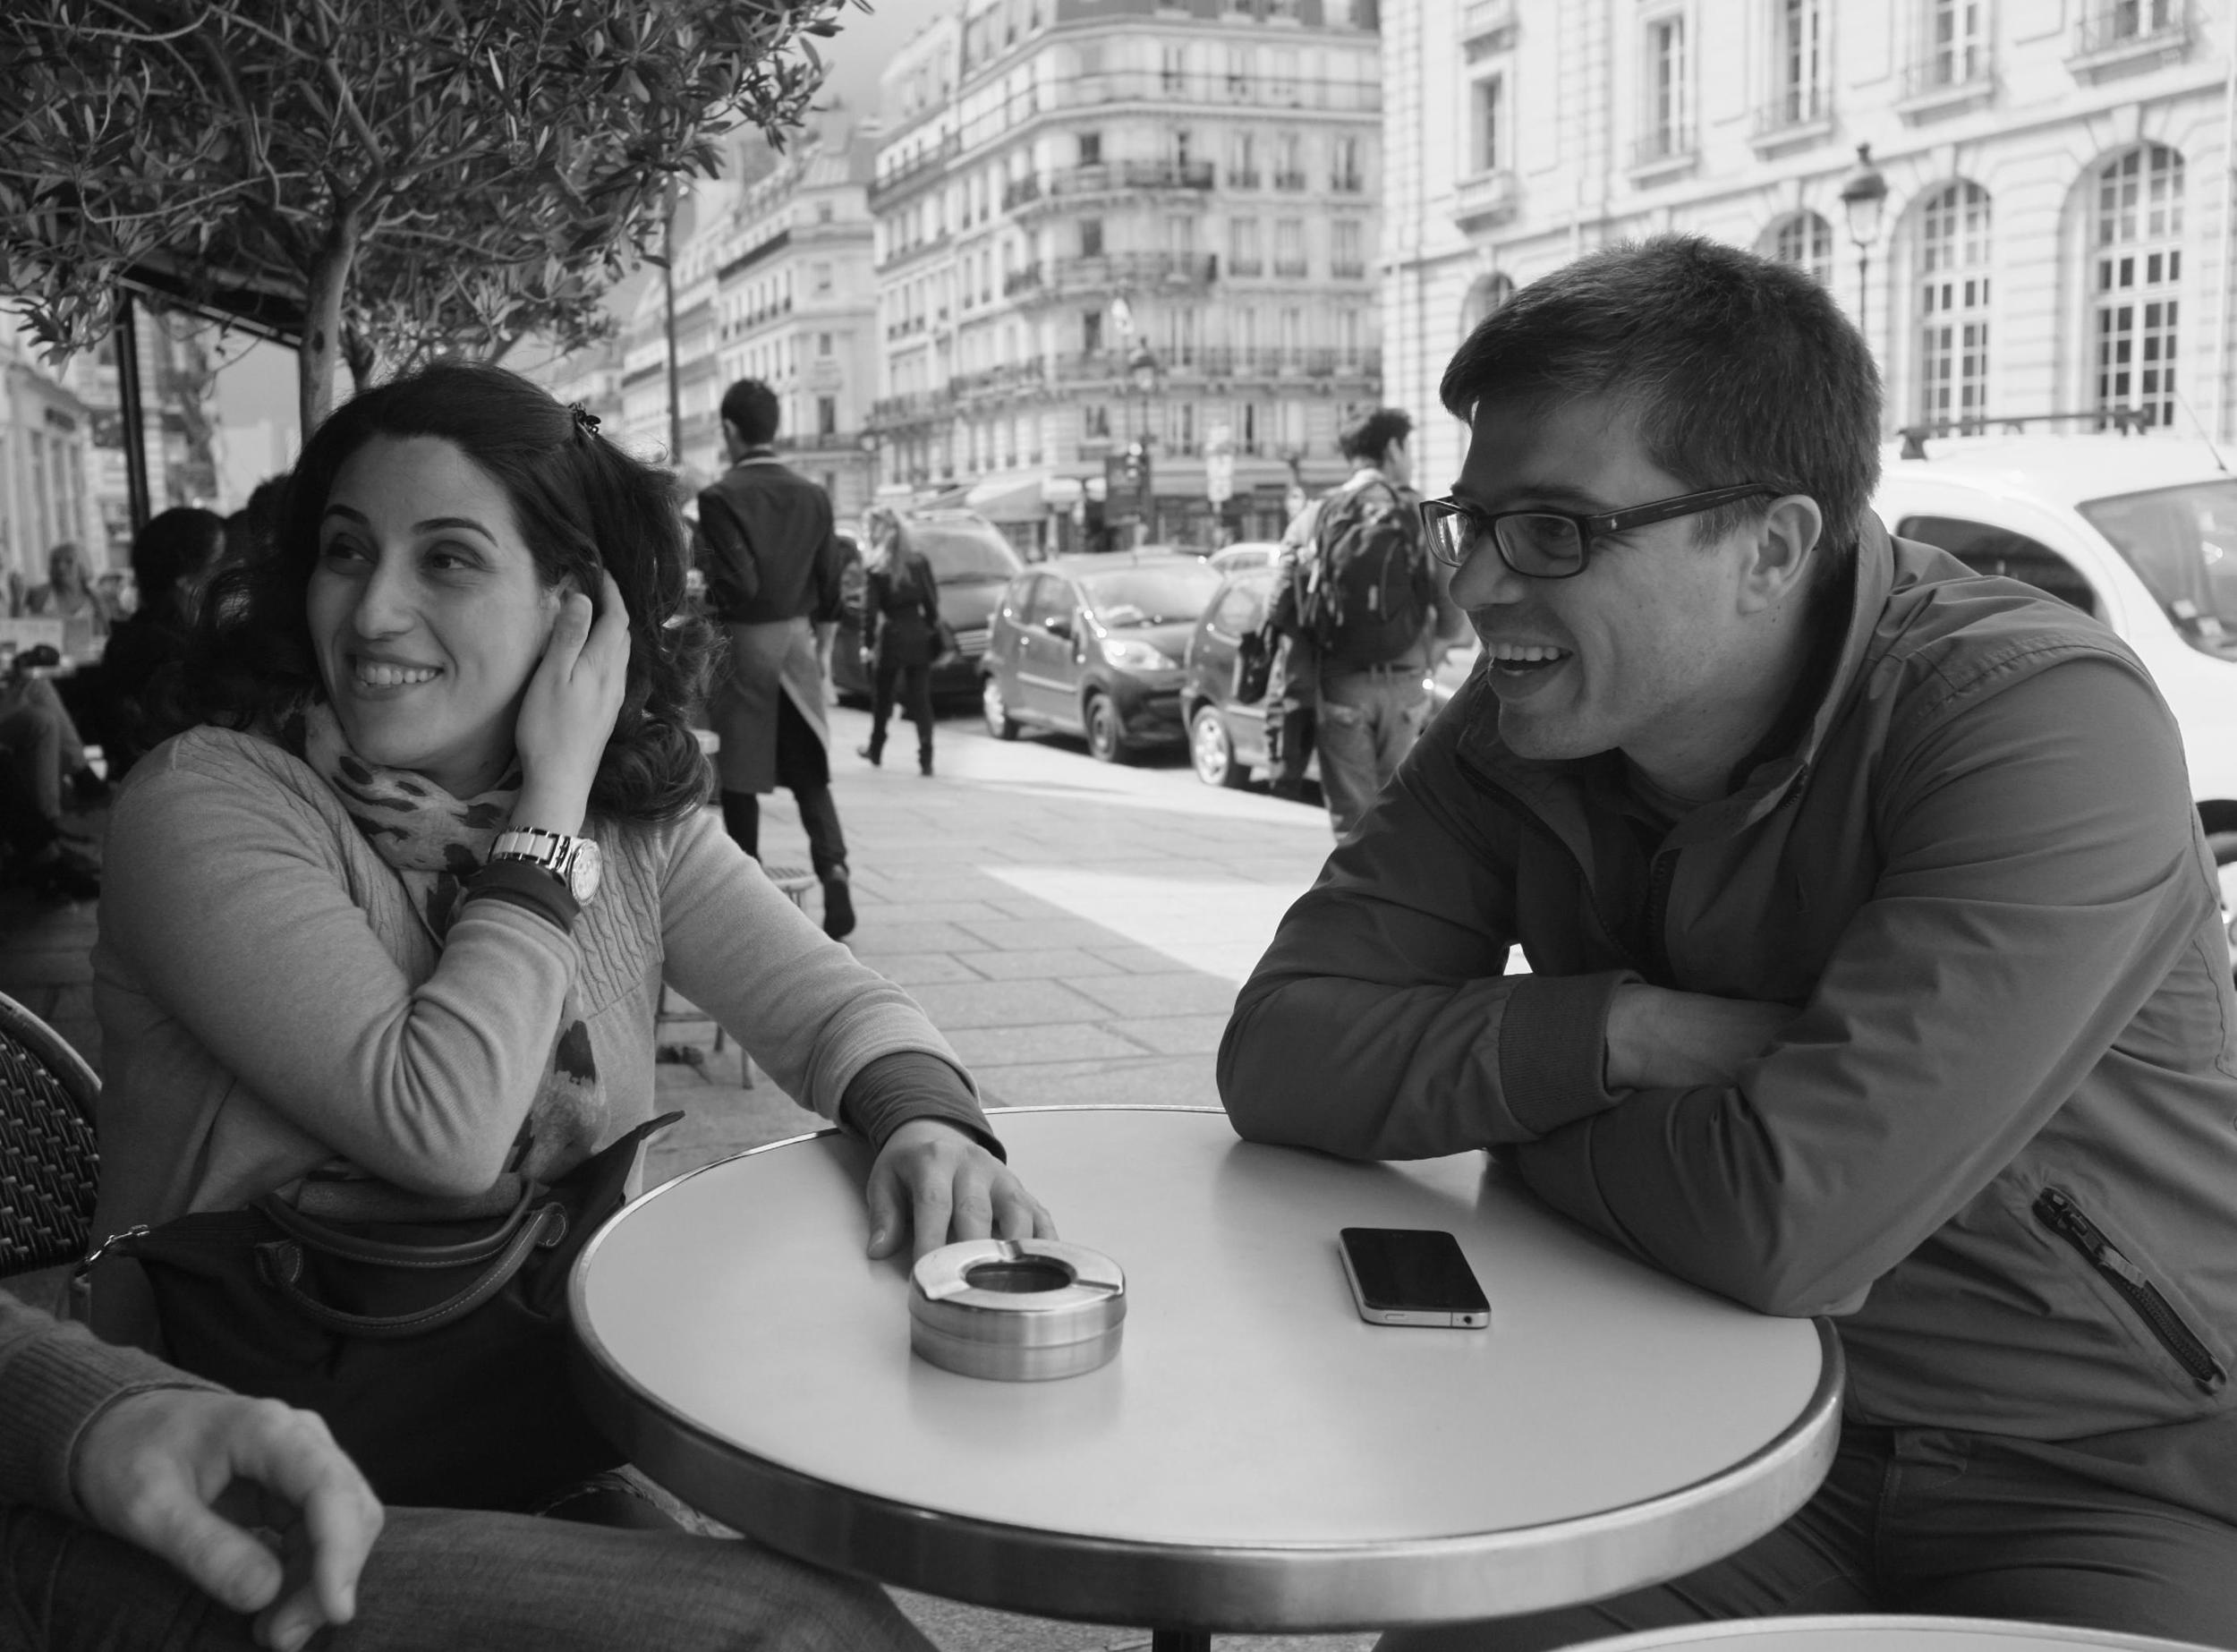 joyce and yiannis (and pascal's hand), near the pantheon, paris, june 2013